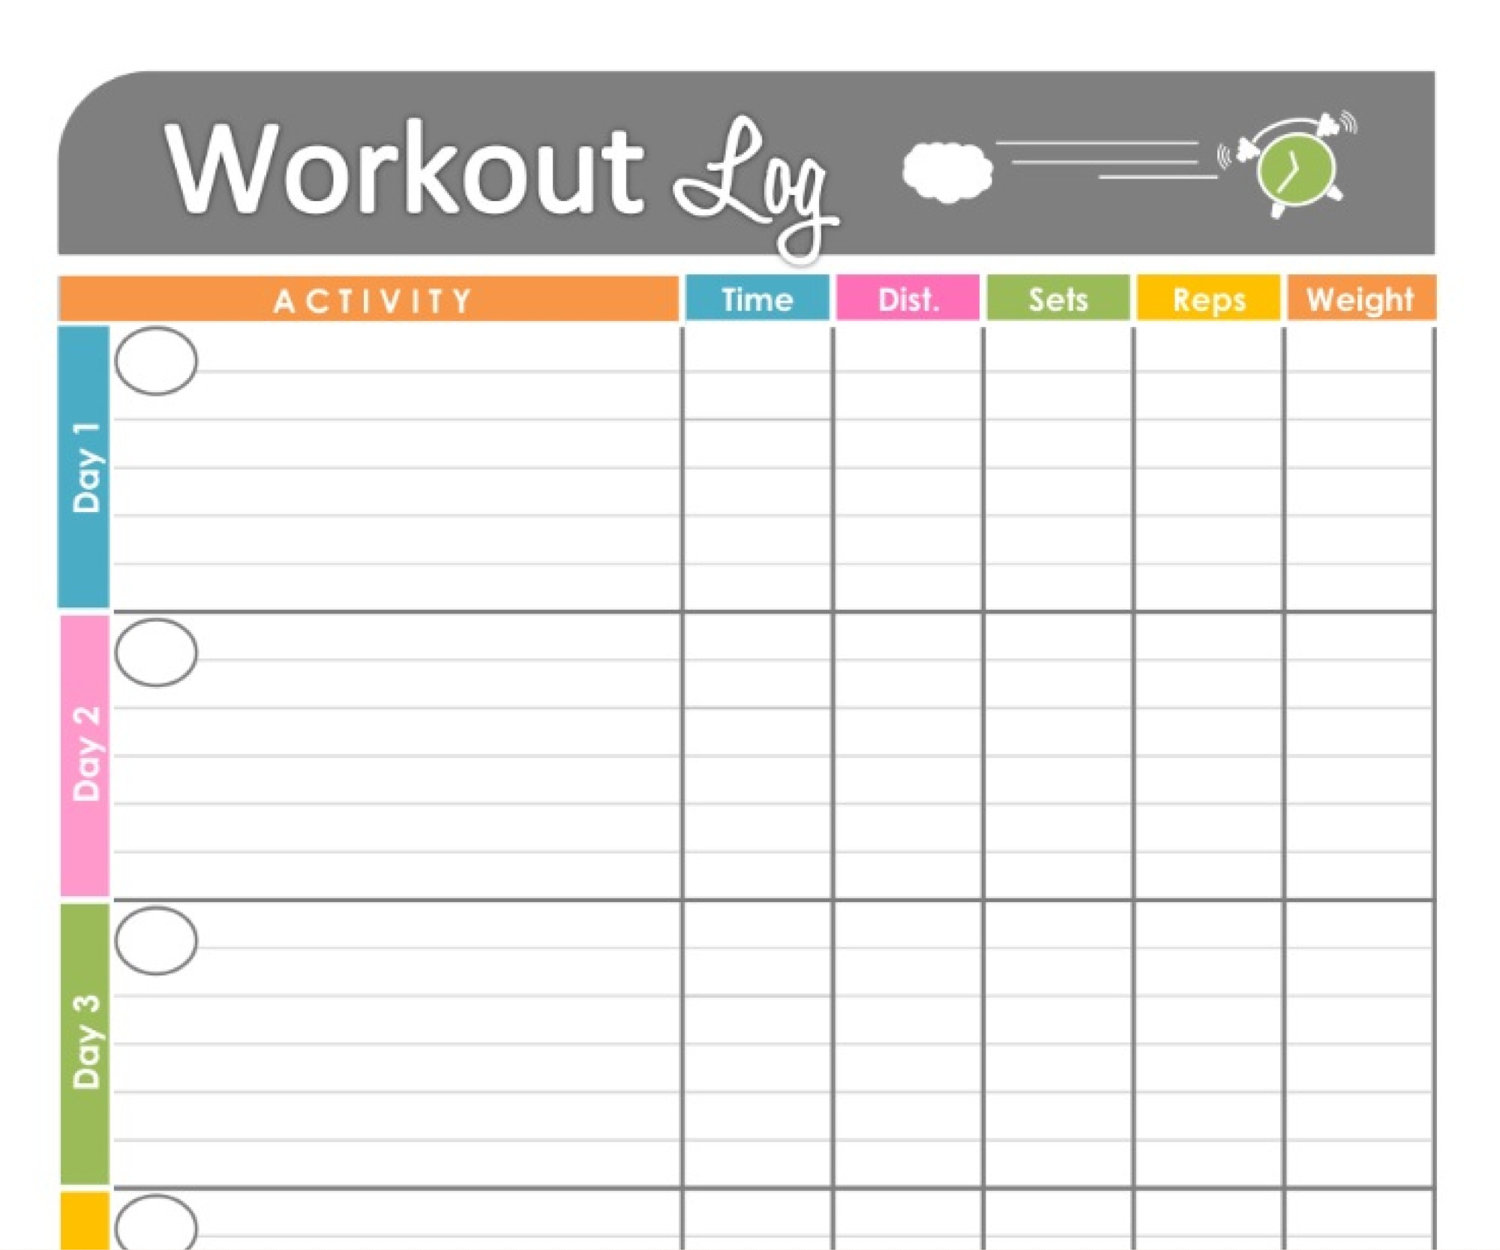 weekly weight loss chart template - 5 best images of weekly exercise chart free printable